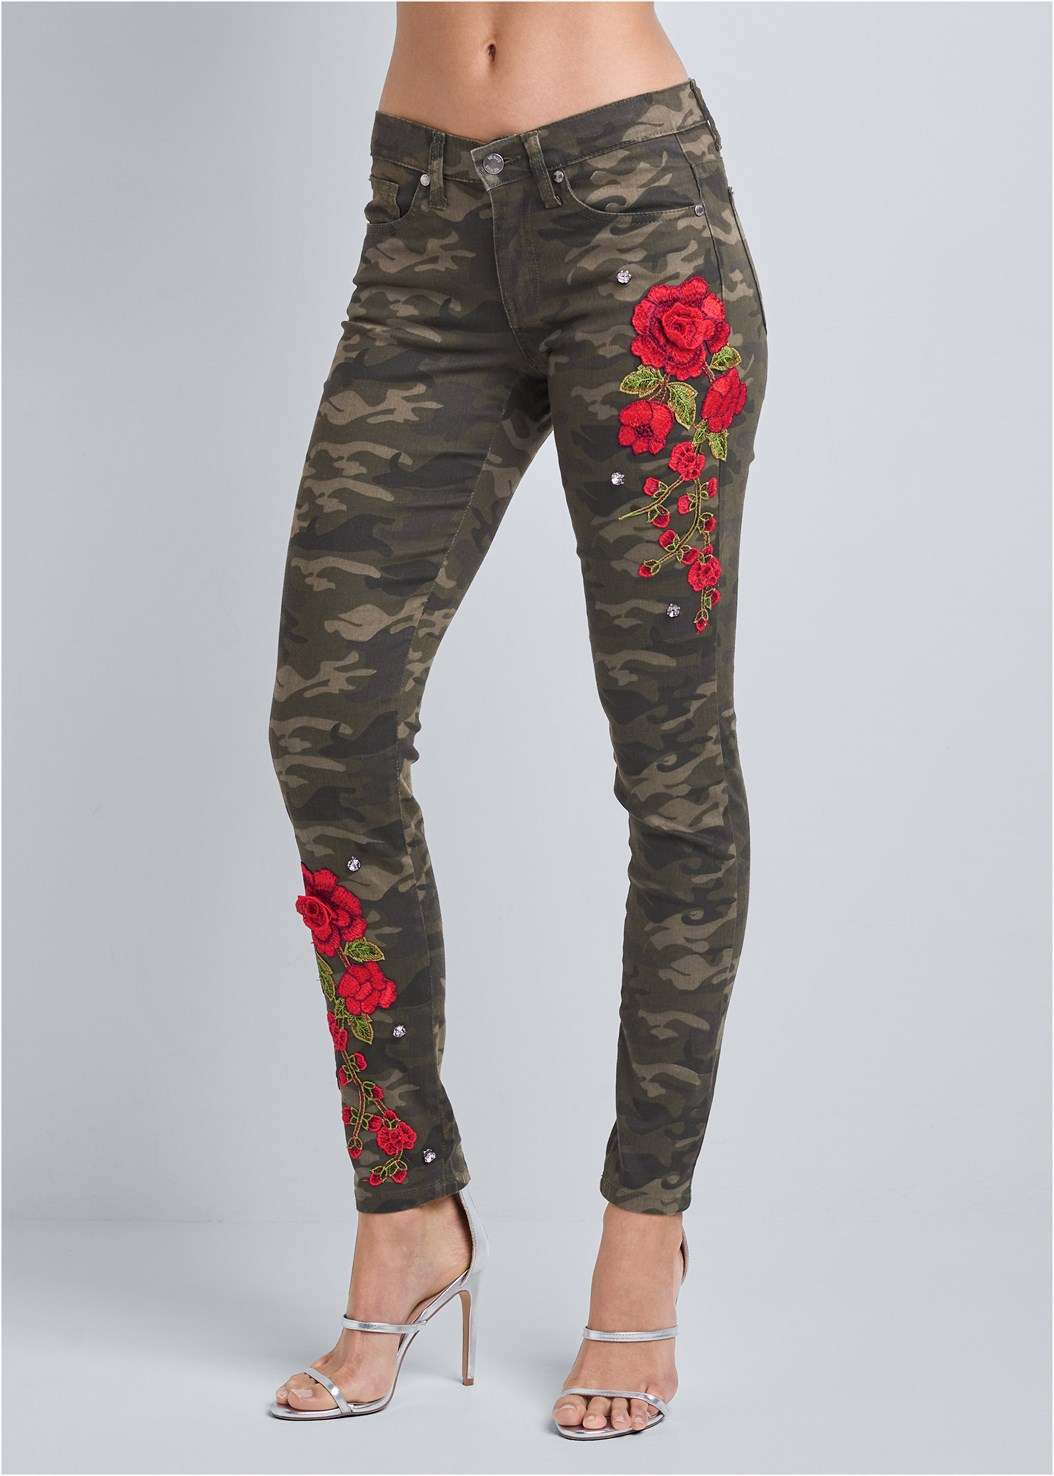 Rose Embroidered Camo Skinny Jeans,High Heel Strappy Sandals